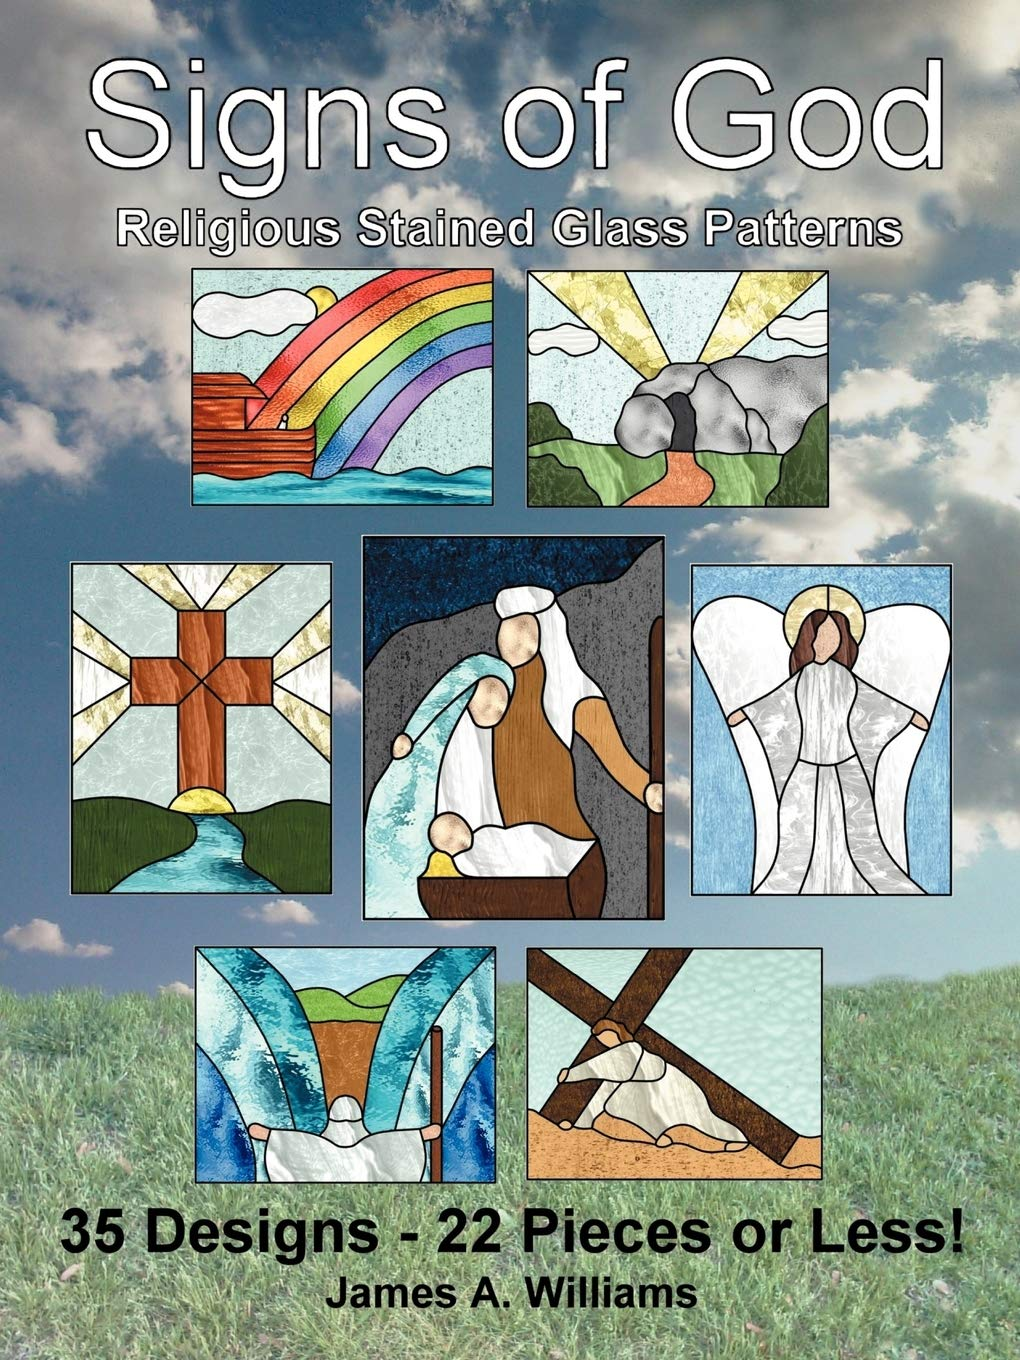 Signs Of God Religious Stained Glass Patterns 35 Designs 22 Pieces Or Less Amazon Co Uk Williams James A Books